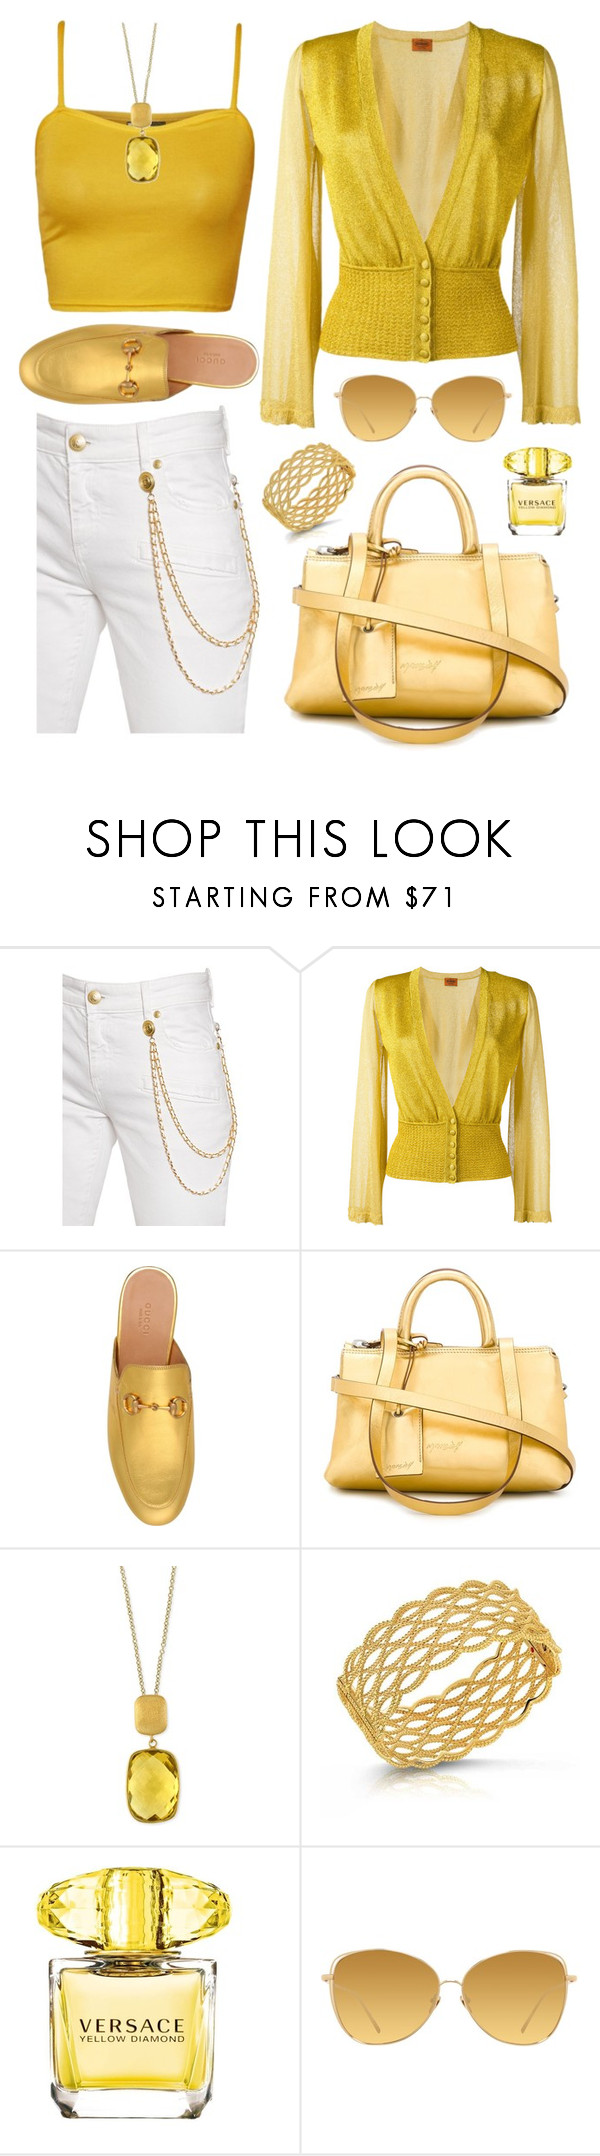 """""""Untitled #1940"""" by ebramos ❤ liked on Polyvore featuring Pierre Balmain, Missoni, Gucci, Marsèll, Effy Jewelry, Roberto Coin, Versace and Linda Farrow"""